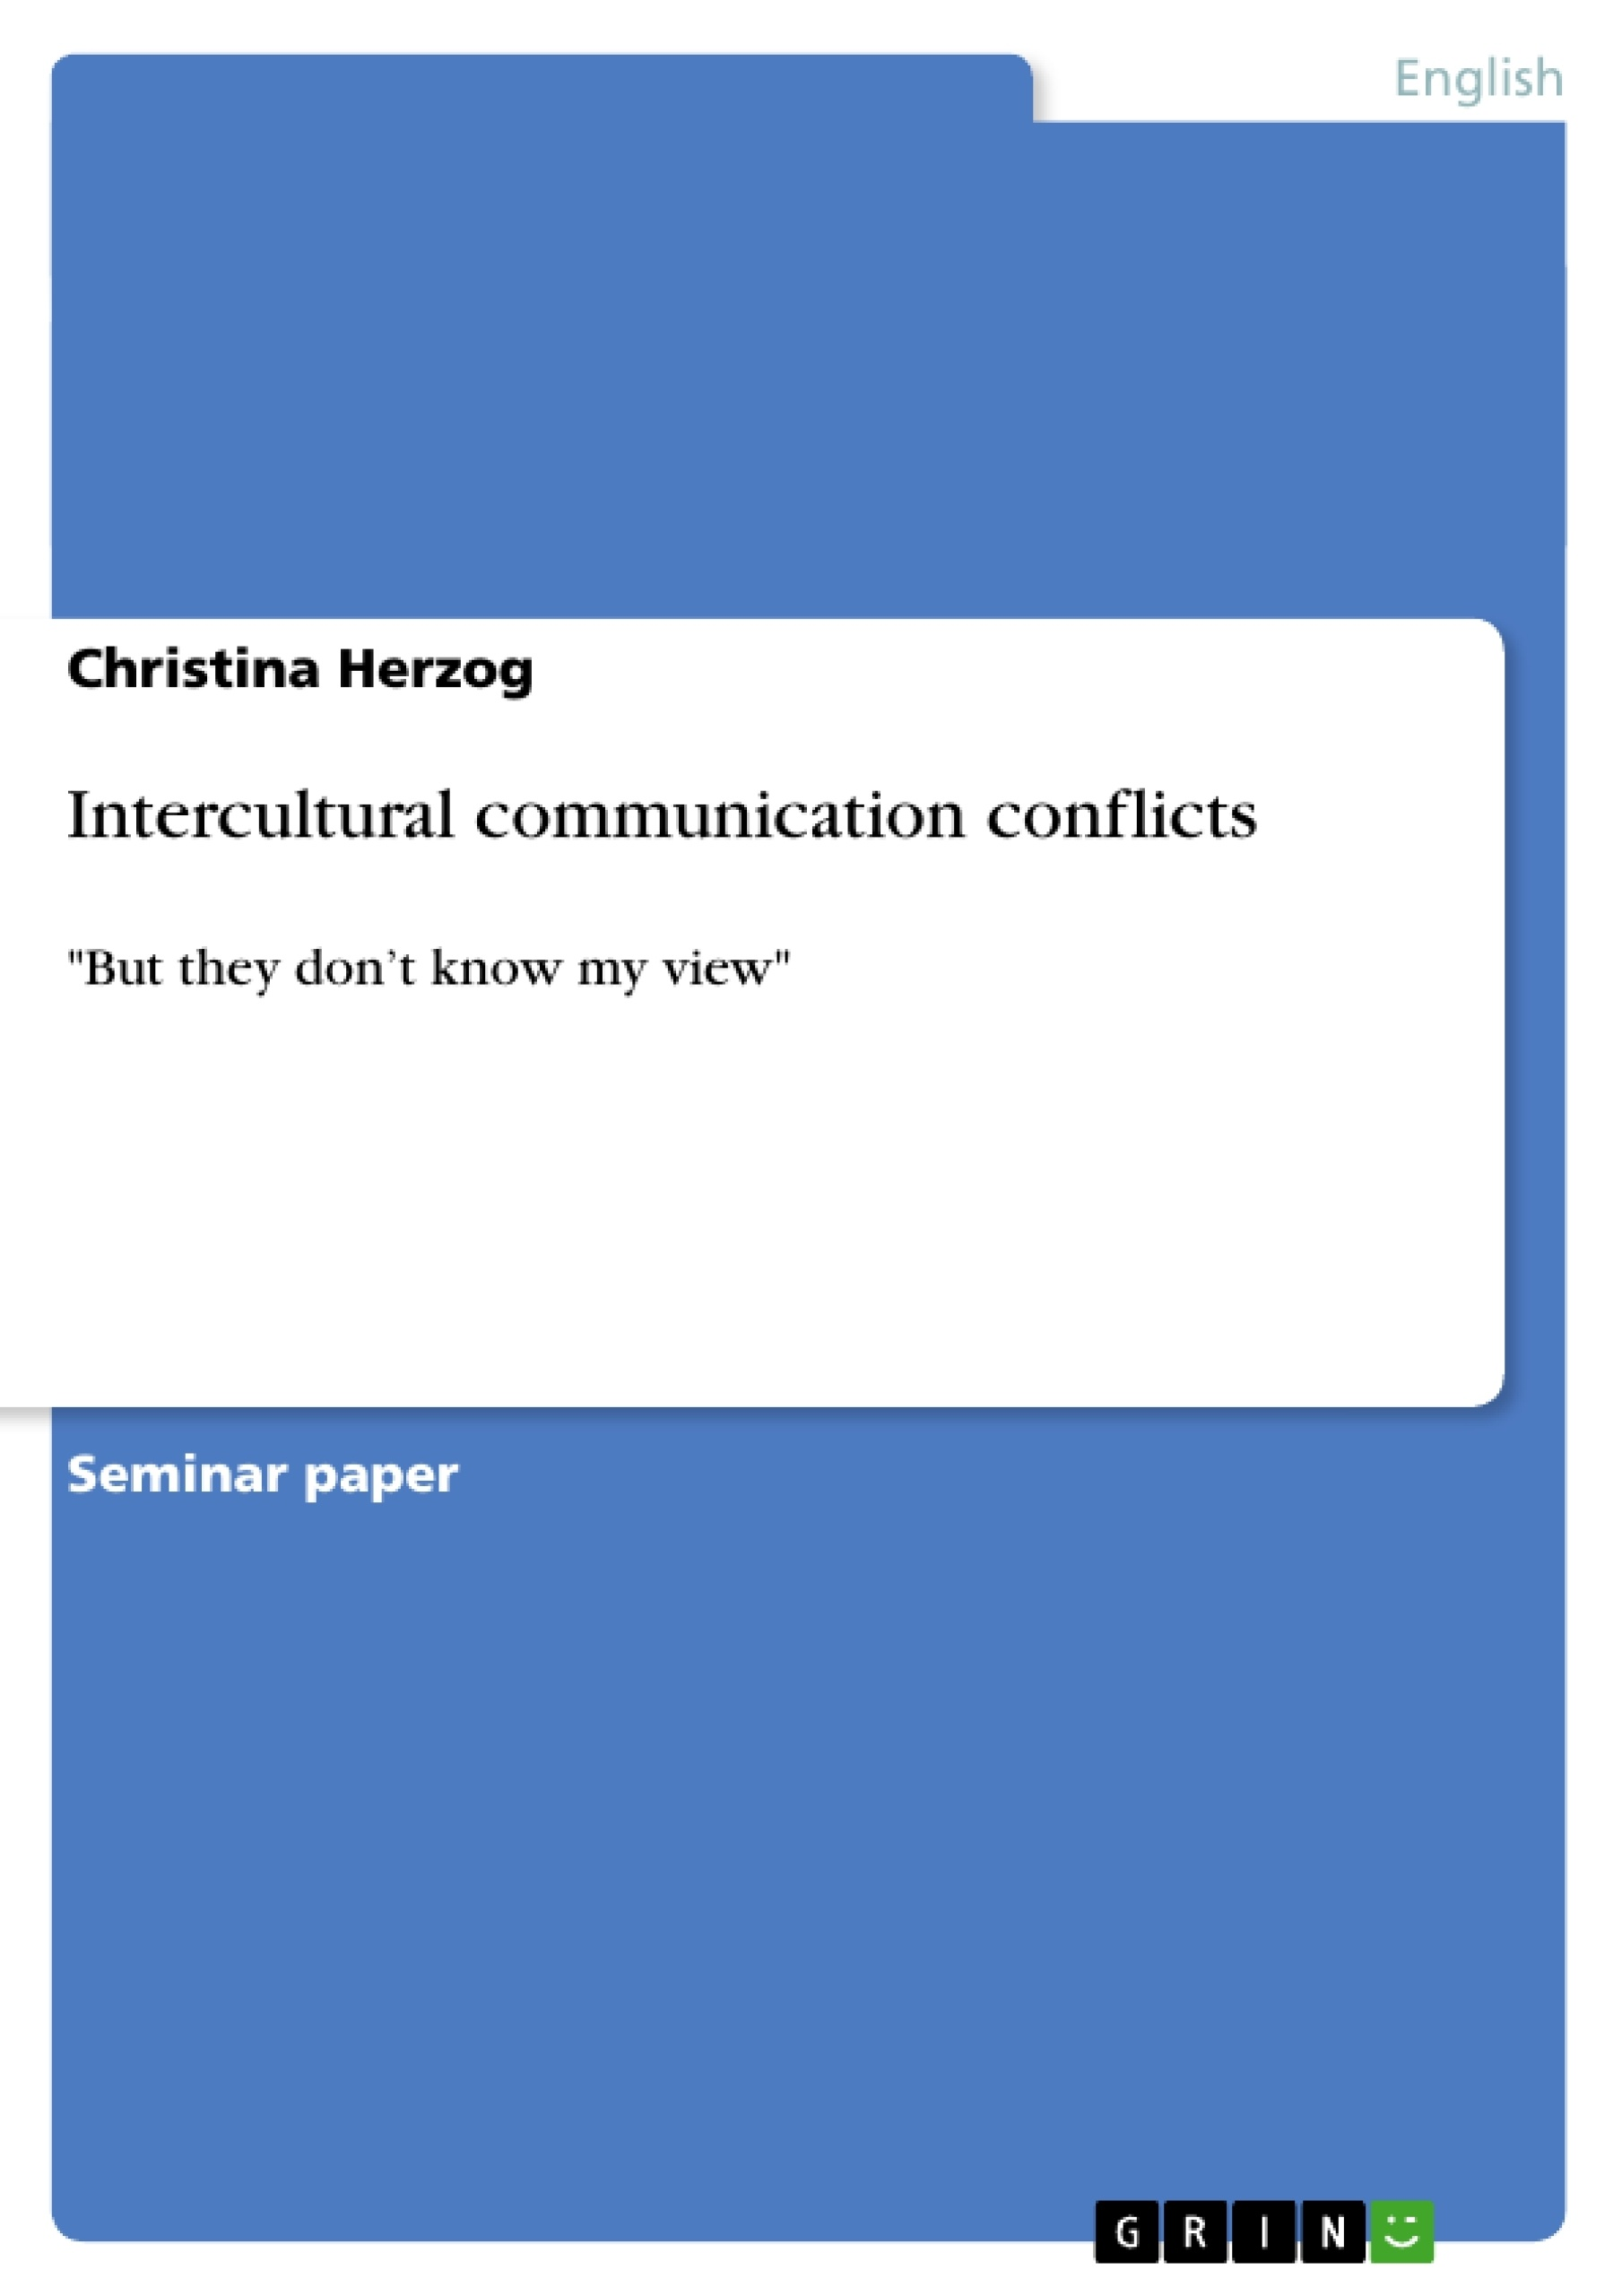 Interpersonal Communication Research Paper Topics